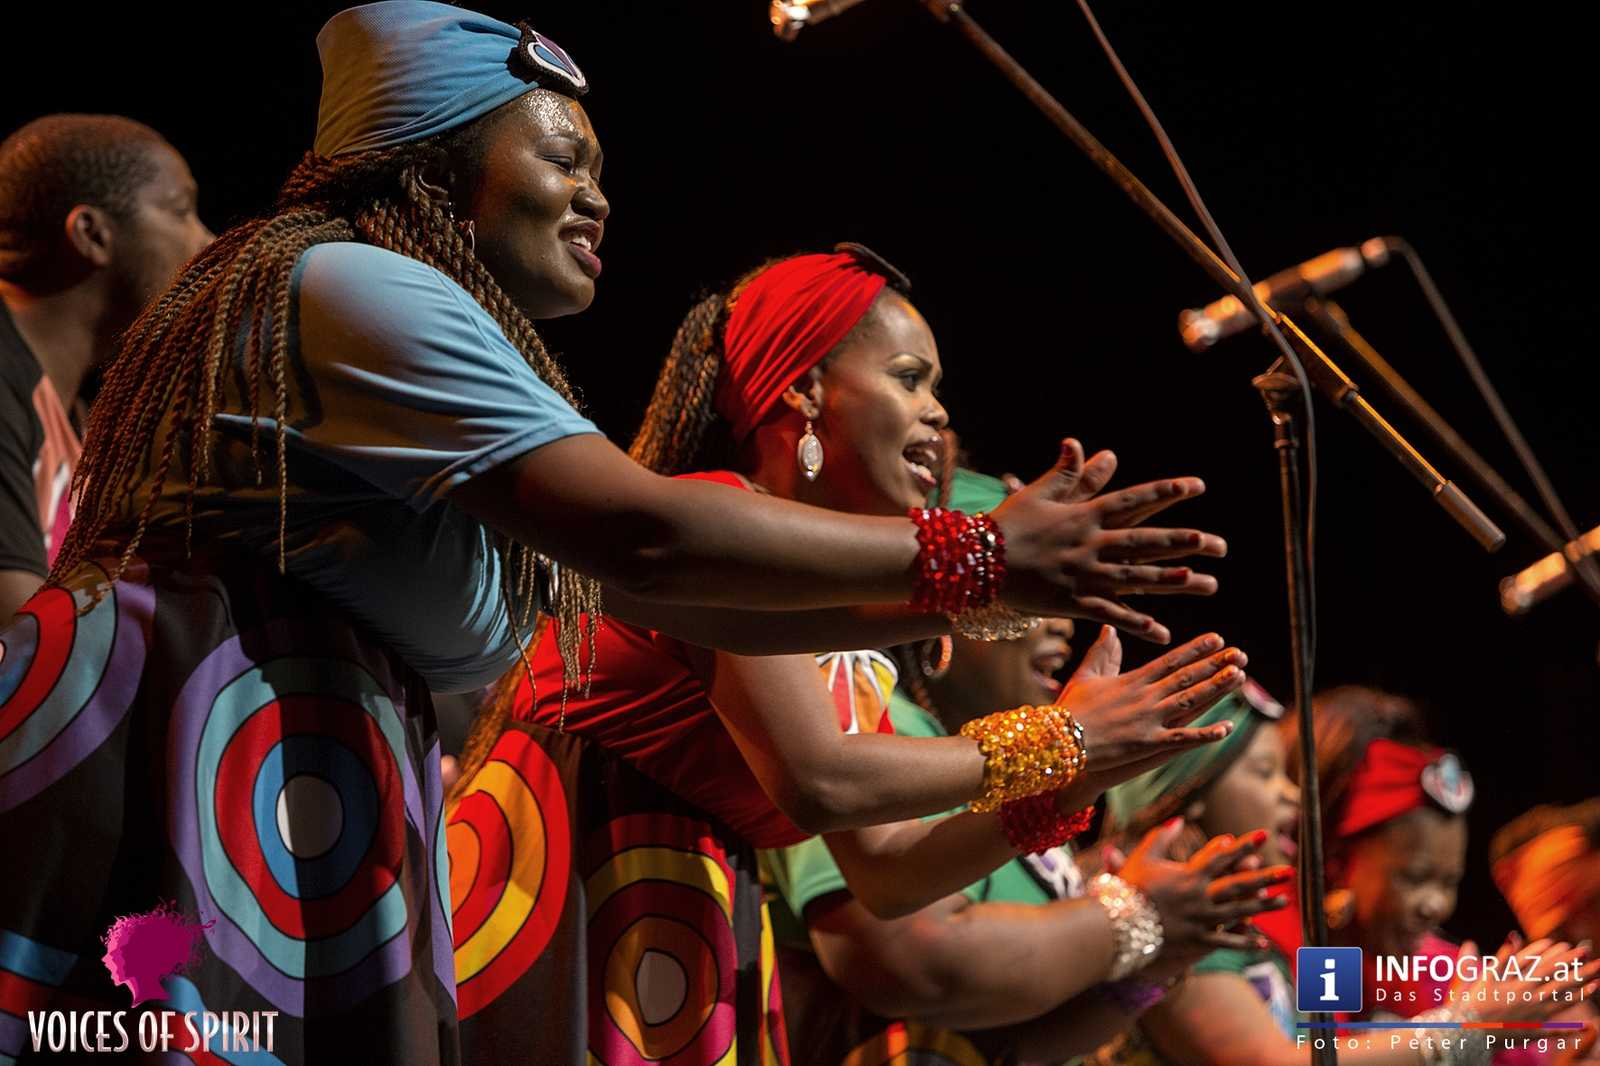 soweto gospel choir internationales chorfestival statdthalle graz voices of spirit eroeffnung festivals 2016 029